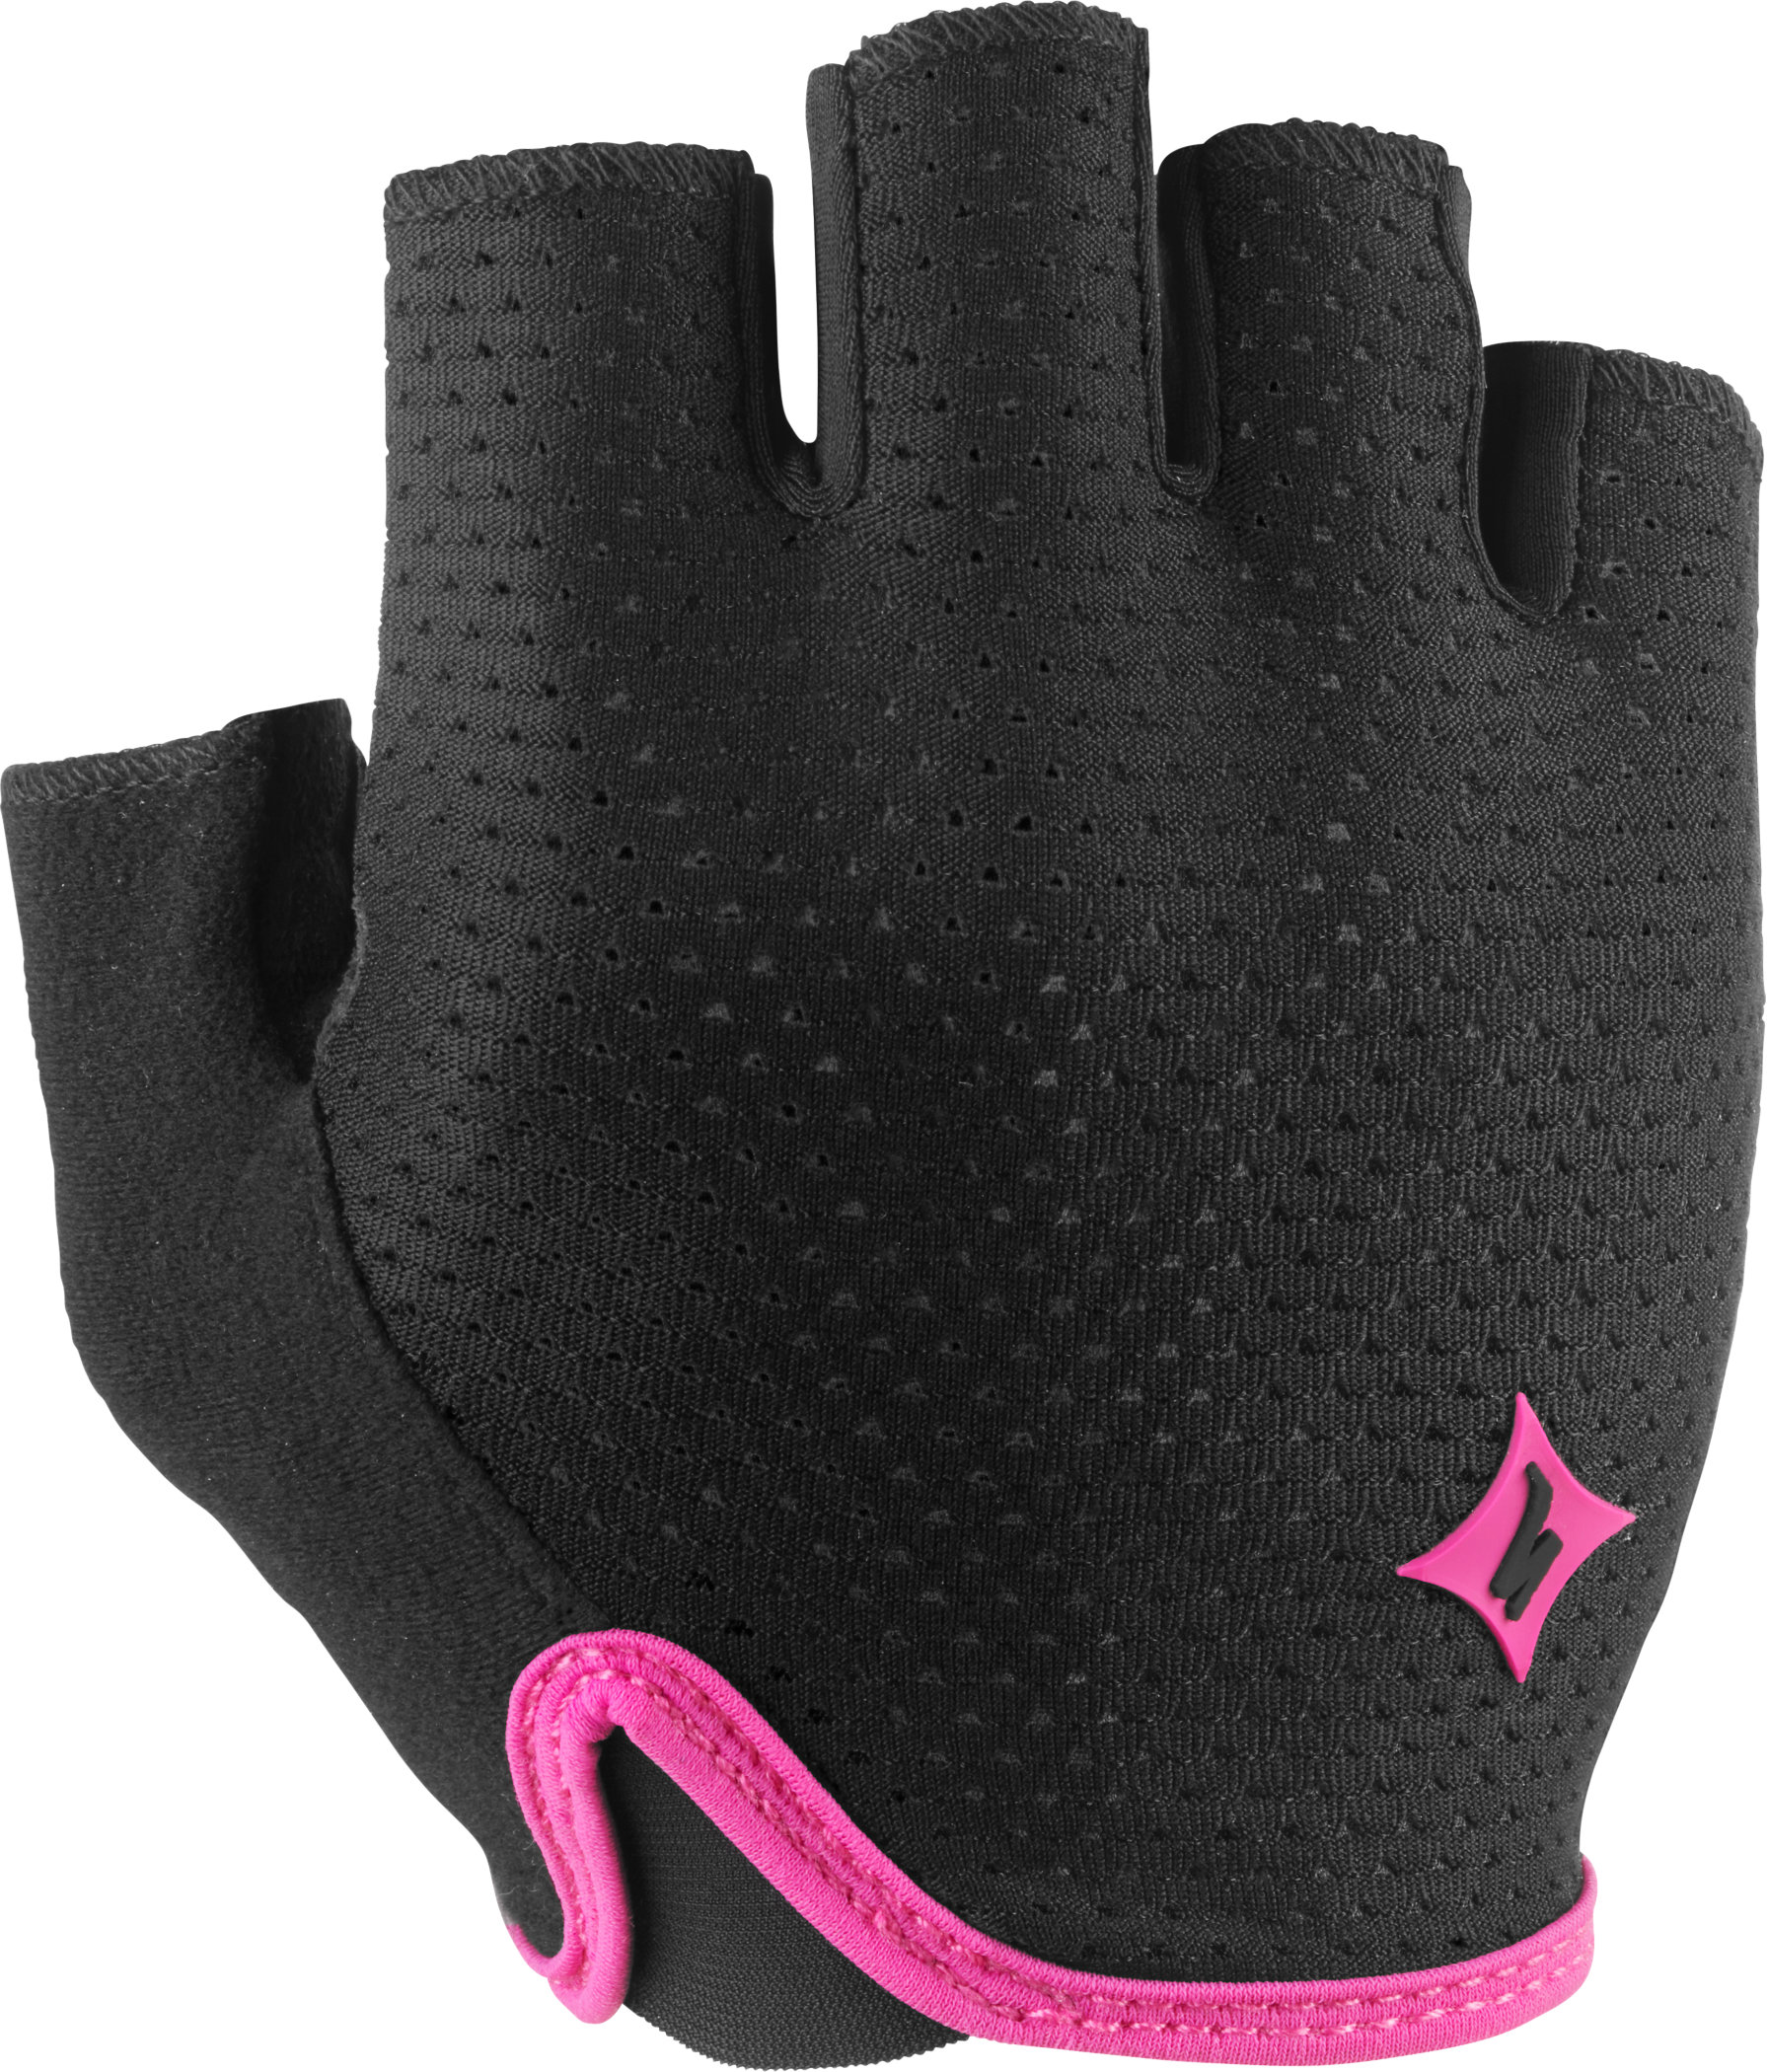 SPECIALIZED BG GRAIL GLOVE SF WMN BLK/PNK S - Bikedreams & Dustbikes